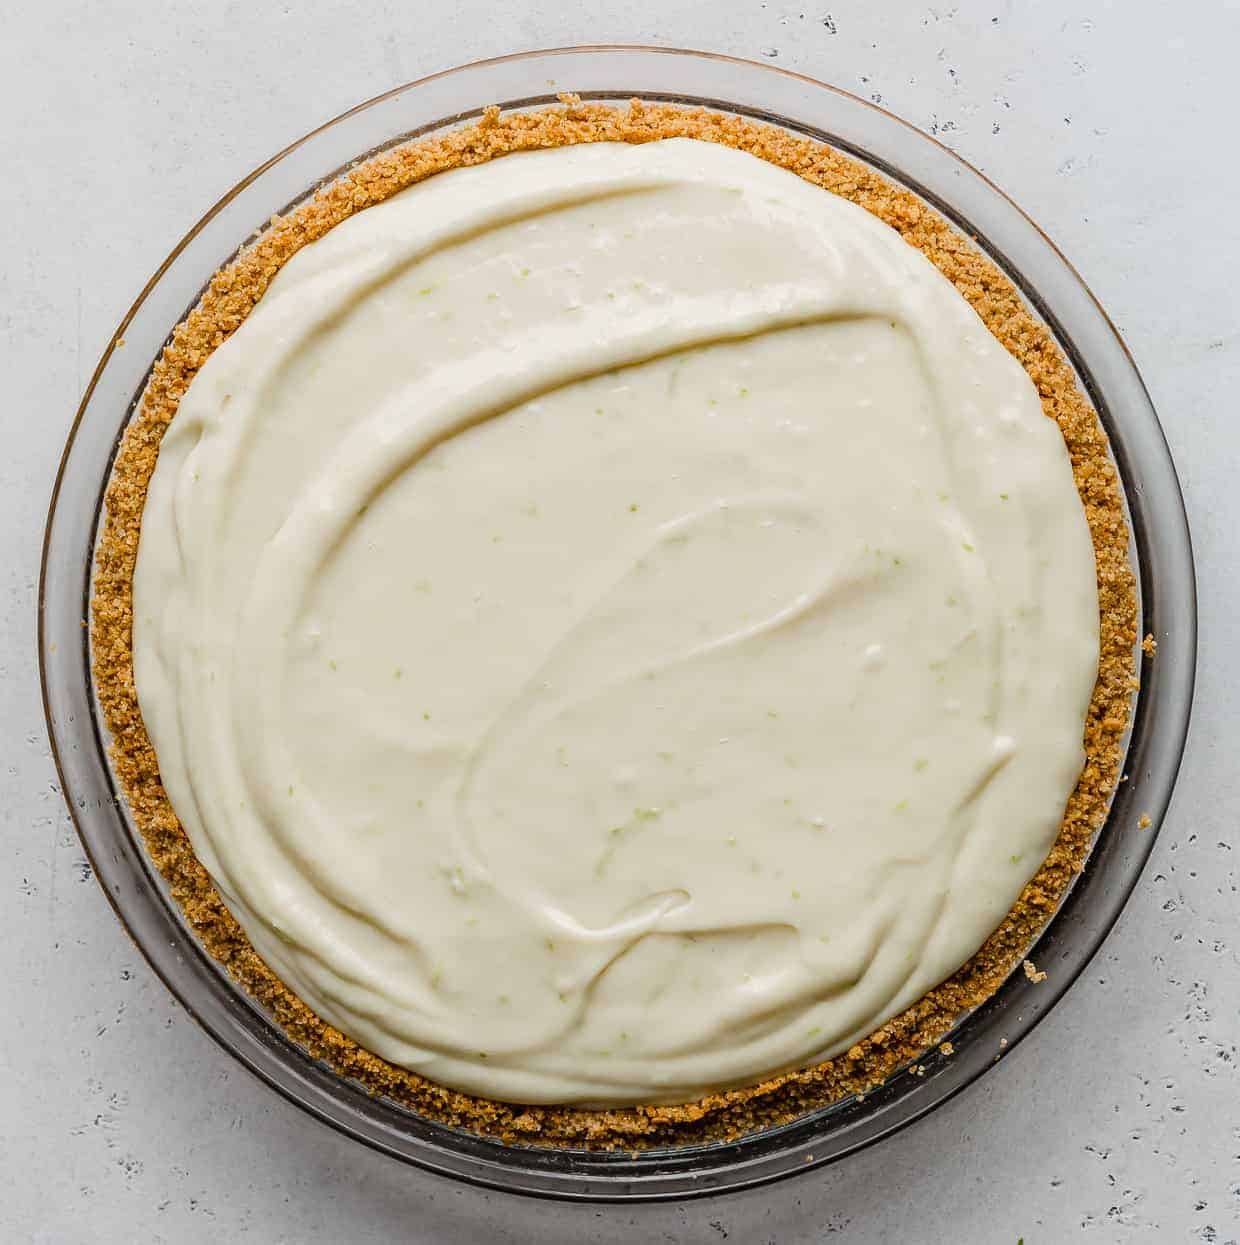 Key lime pie filling in a graham cracker crust.